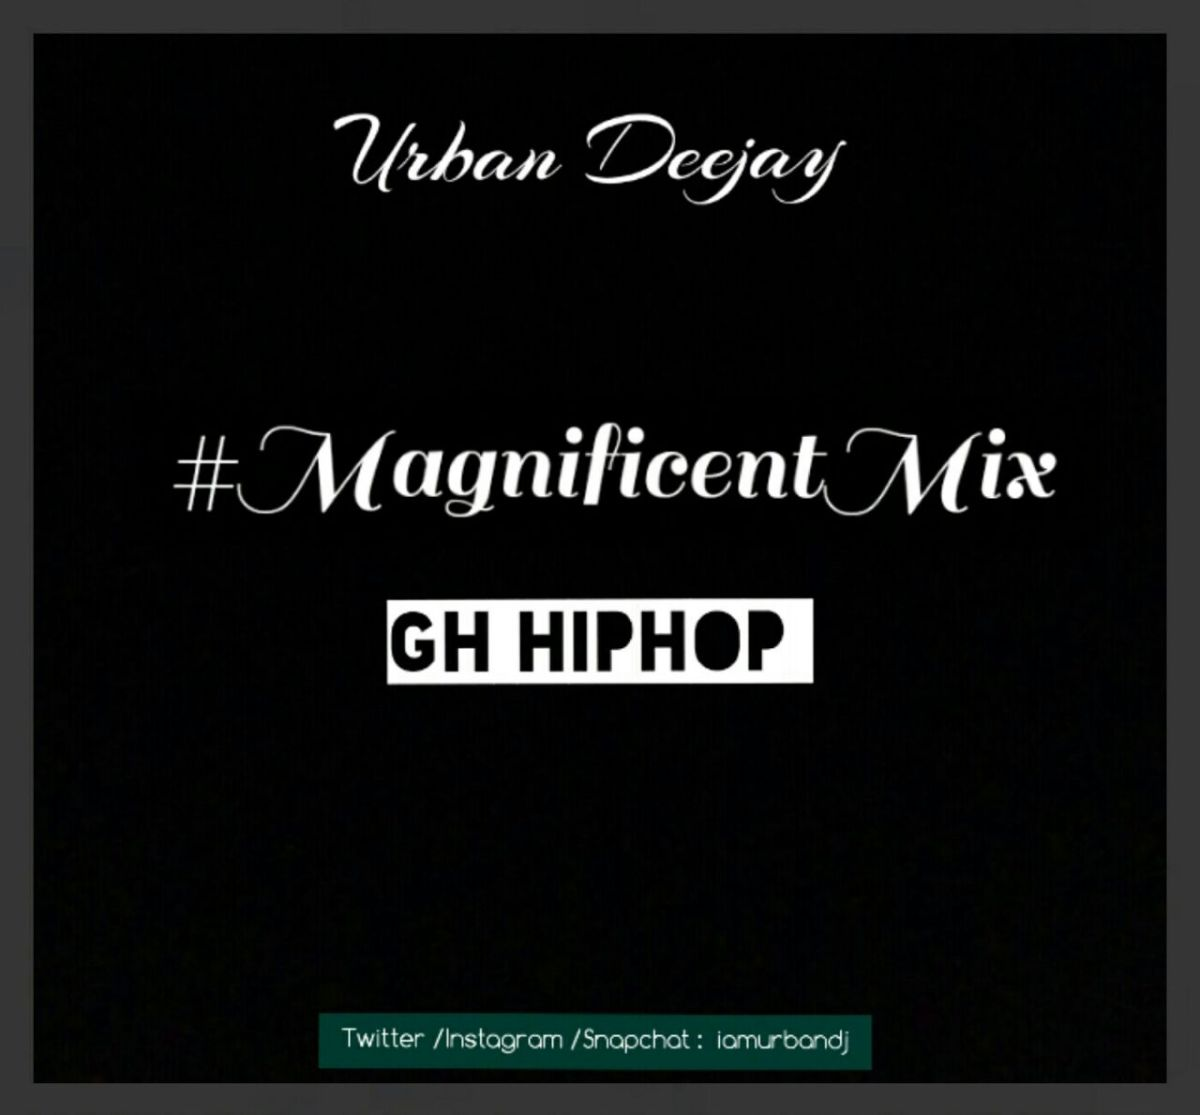 URBAN DEEJAY- MAGNIFICENT MIX ( GH HIP HOP )